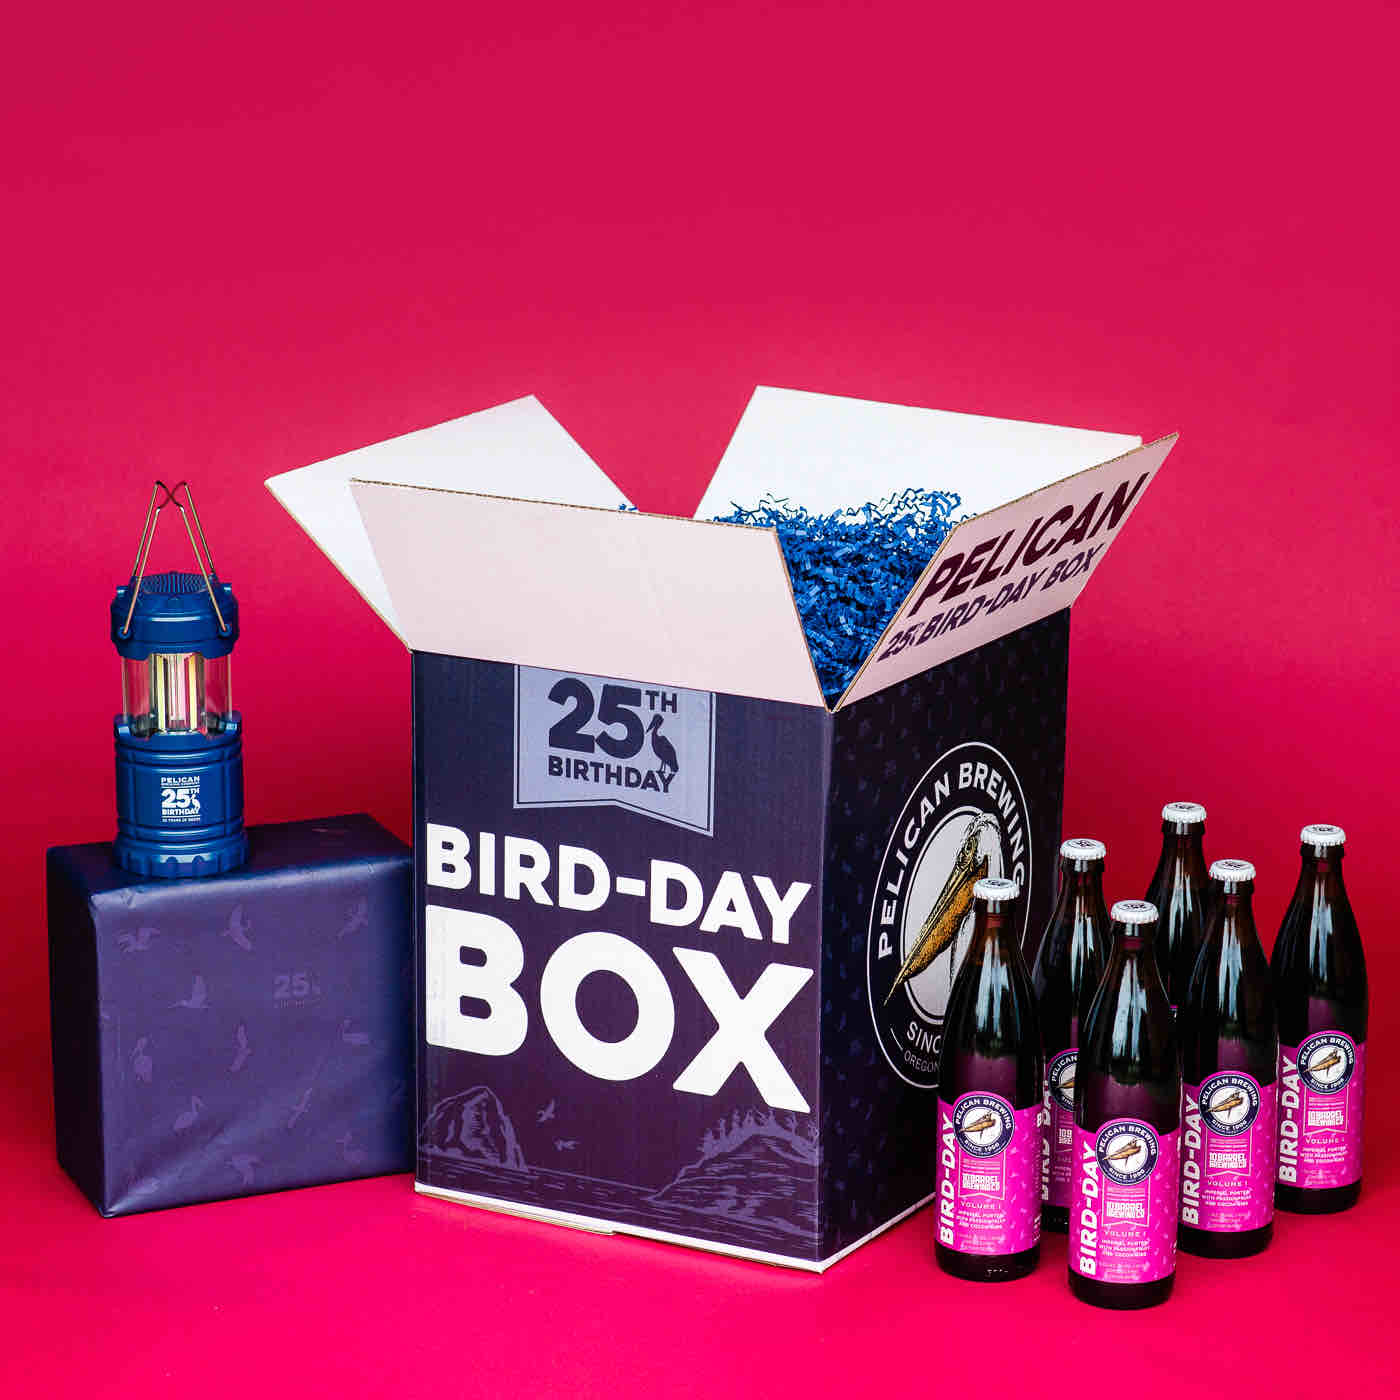 image of Bird-Day Box courtesy of Pelican Brewing